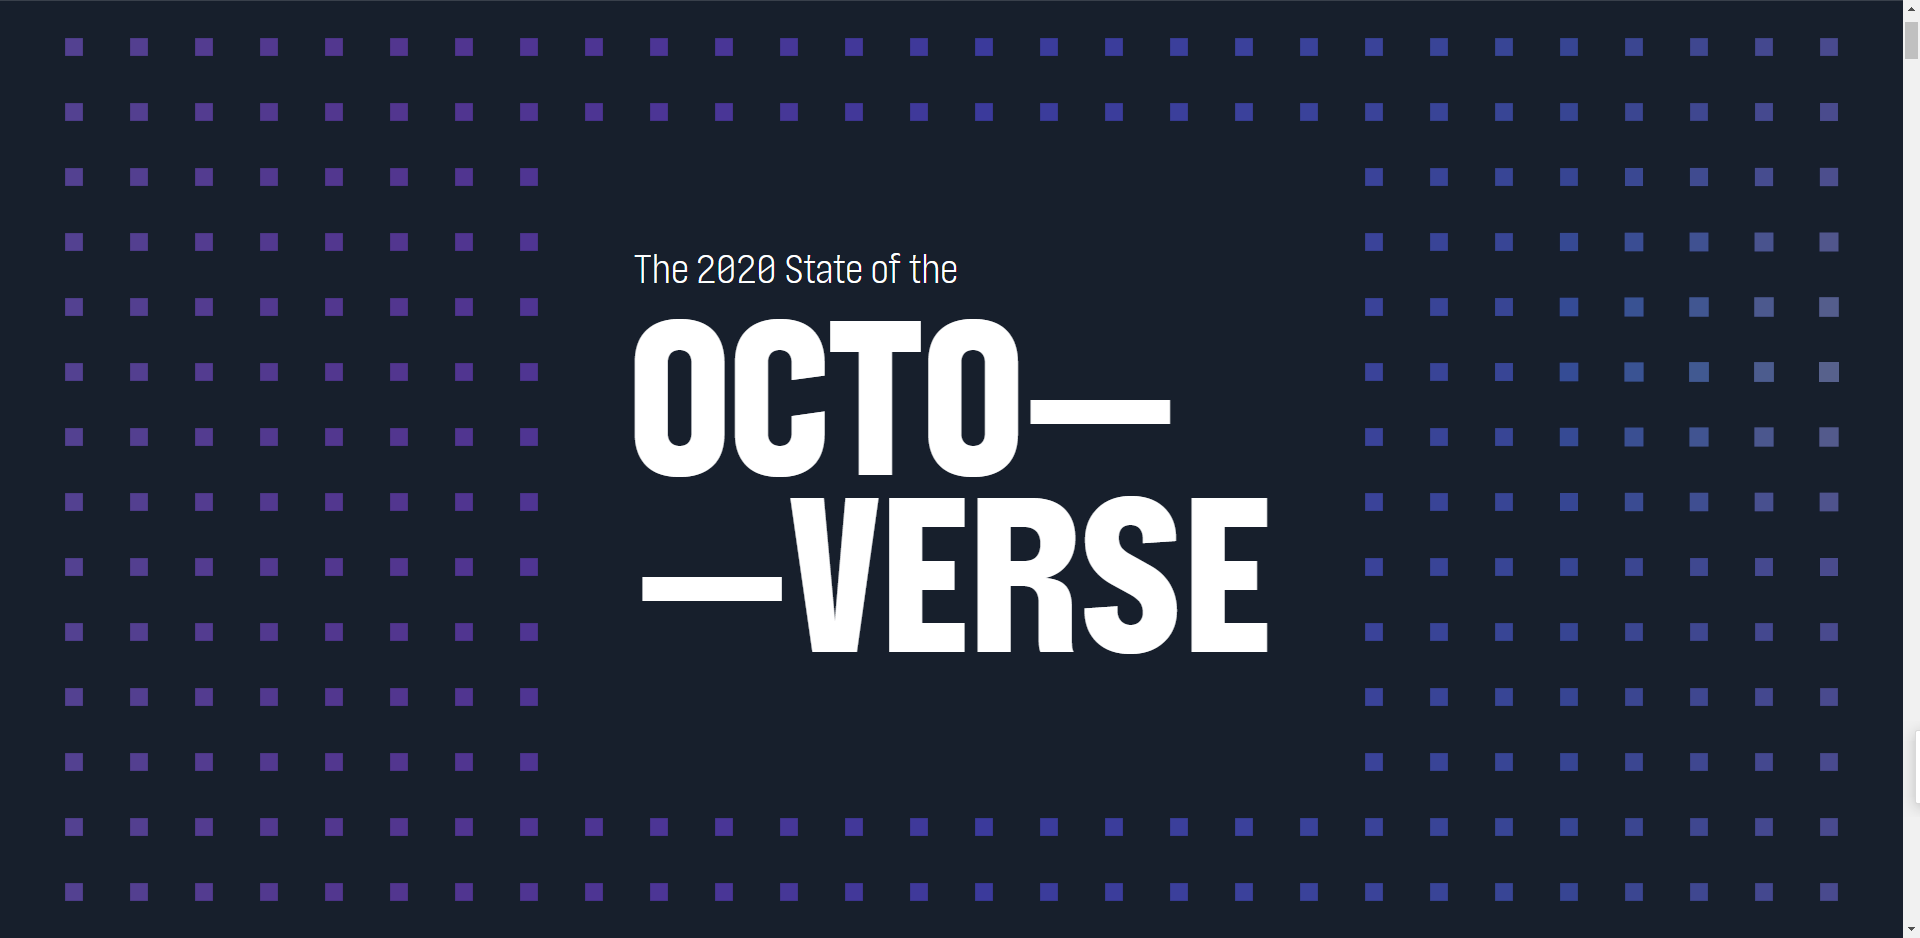 The 2020 State of the OCTO— —VERSE